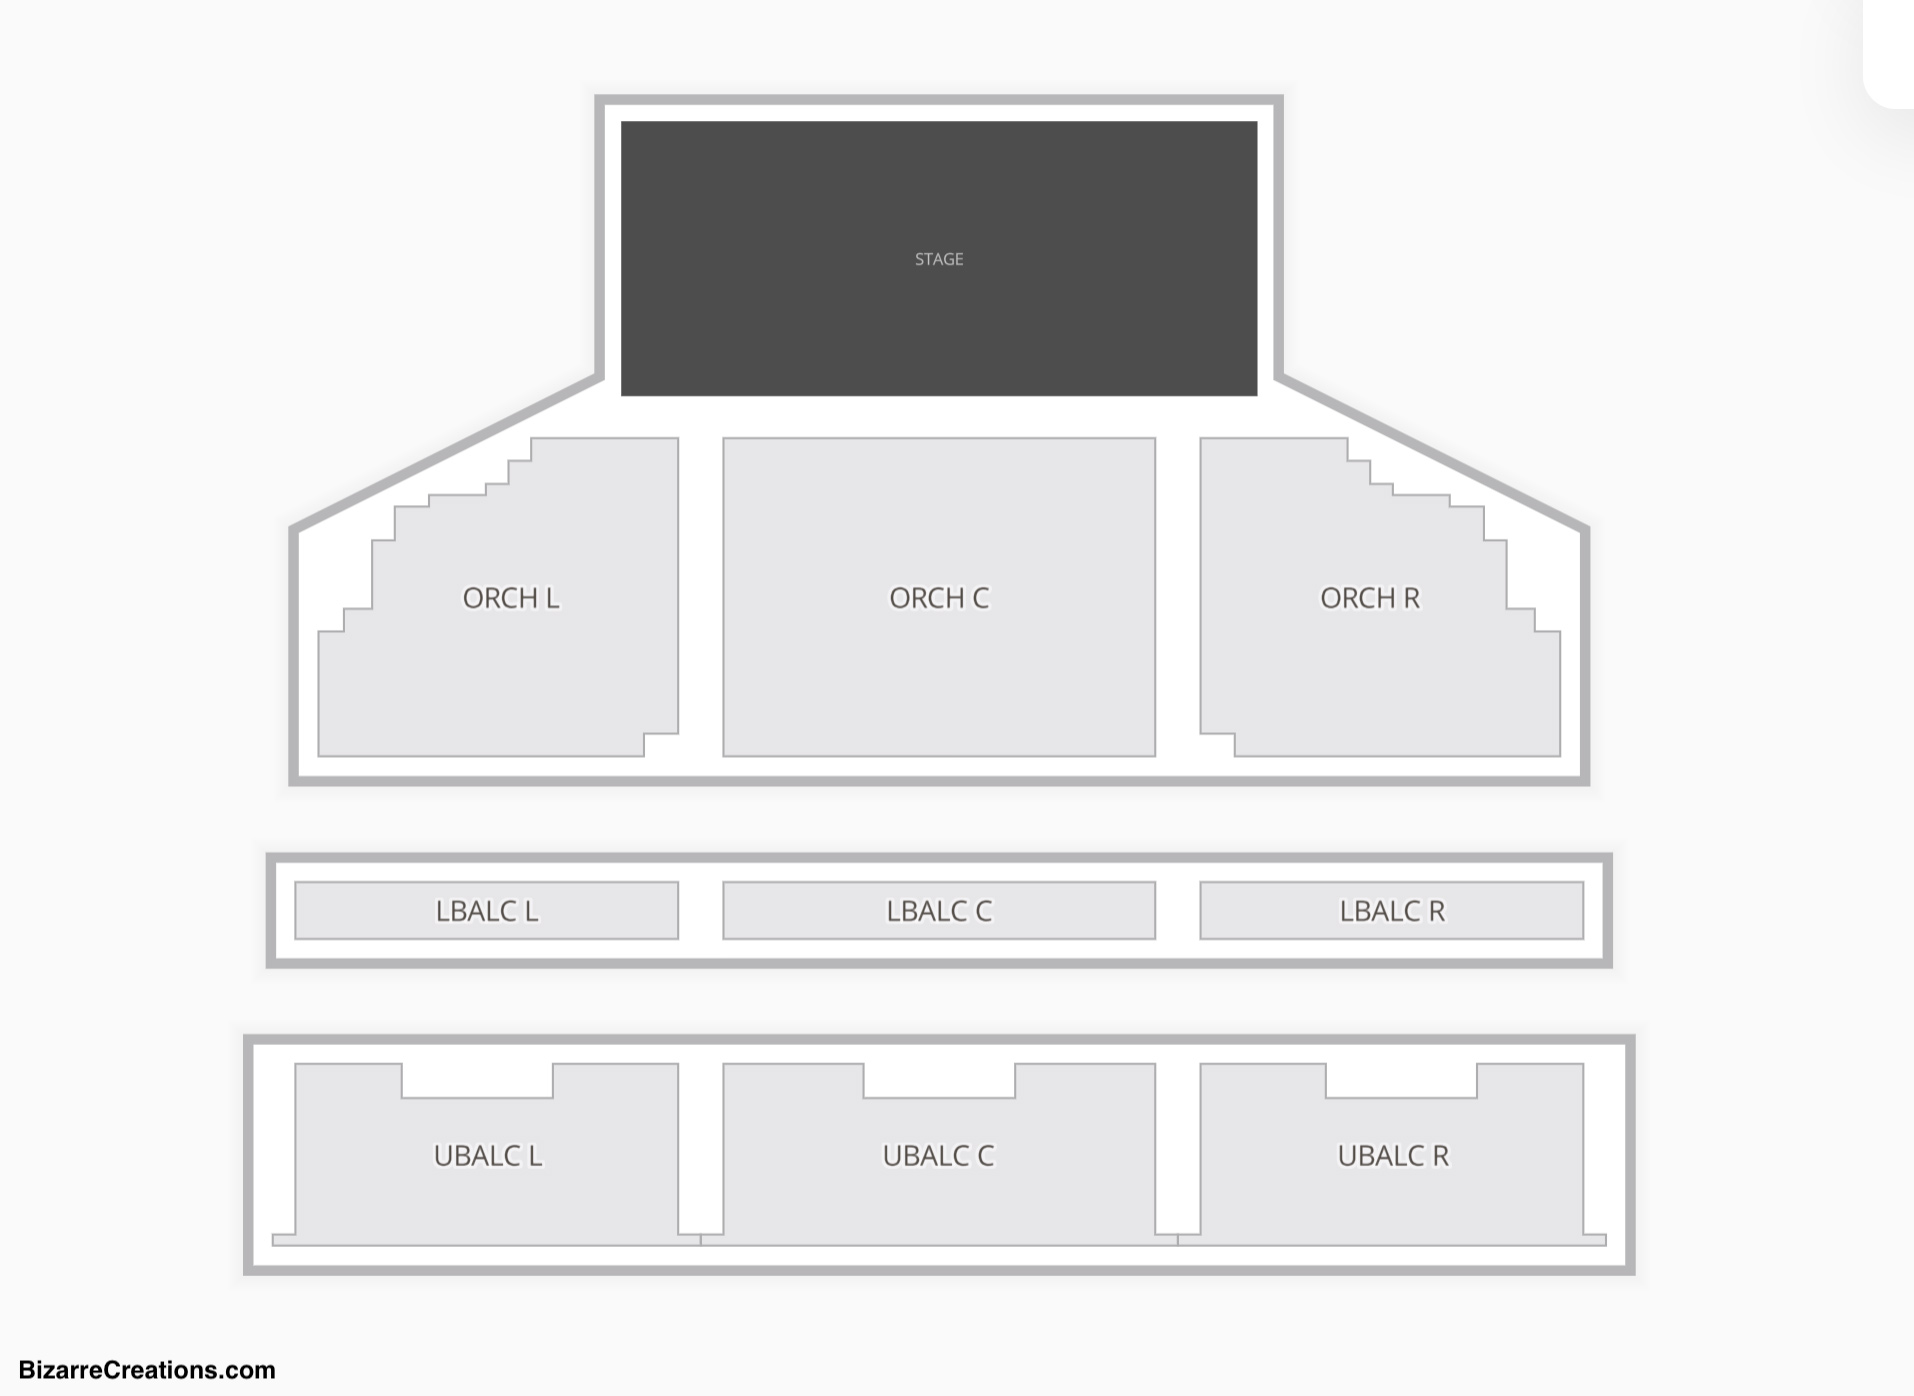 The Theatre at Ace Hotel Seating Chart